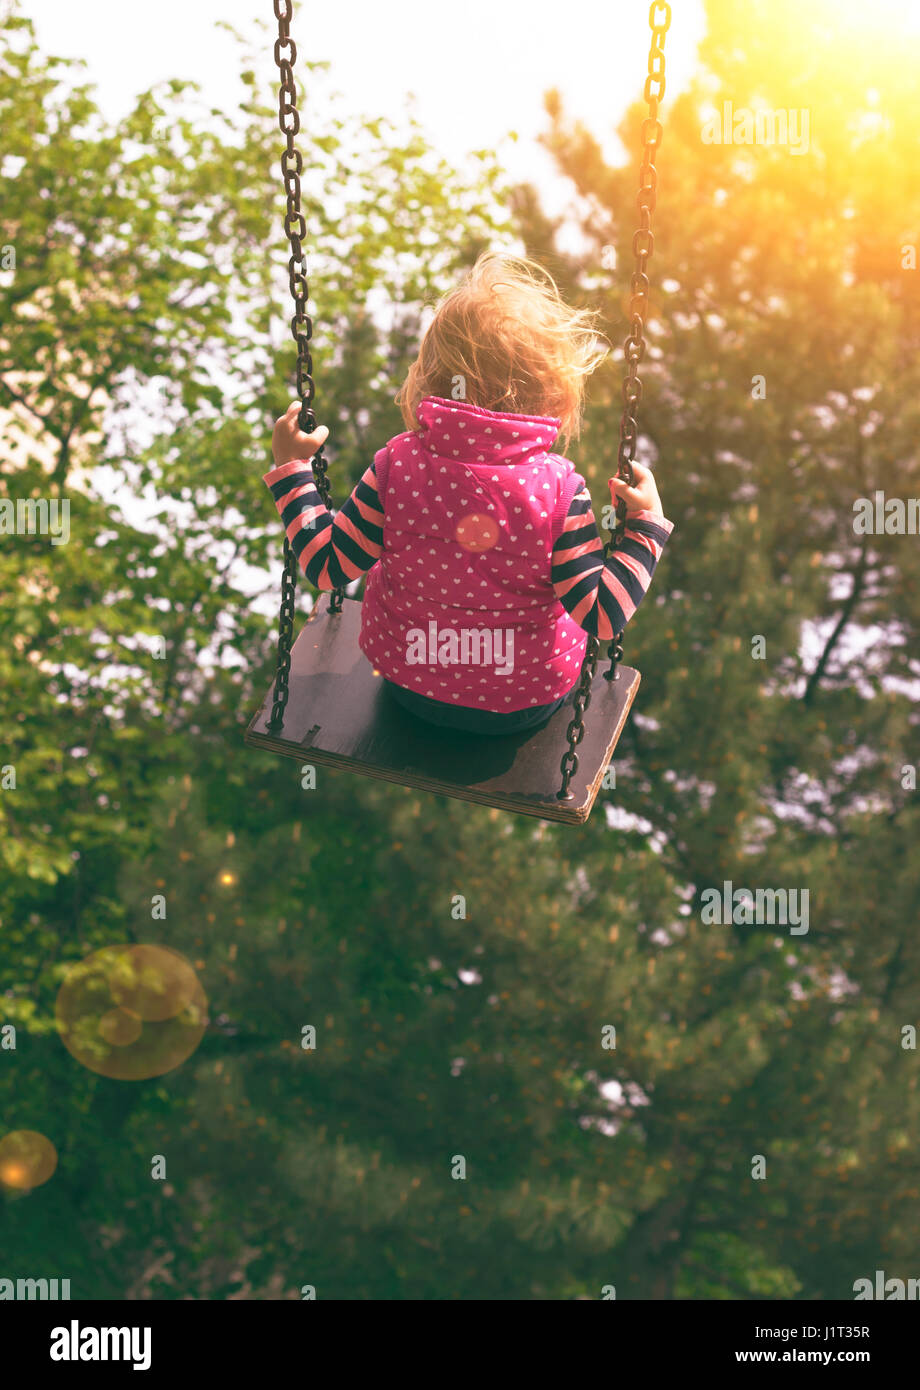 Toddler girl on the swing - Stock Image